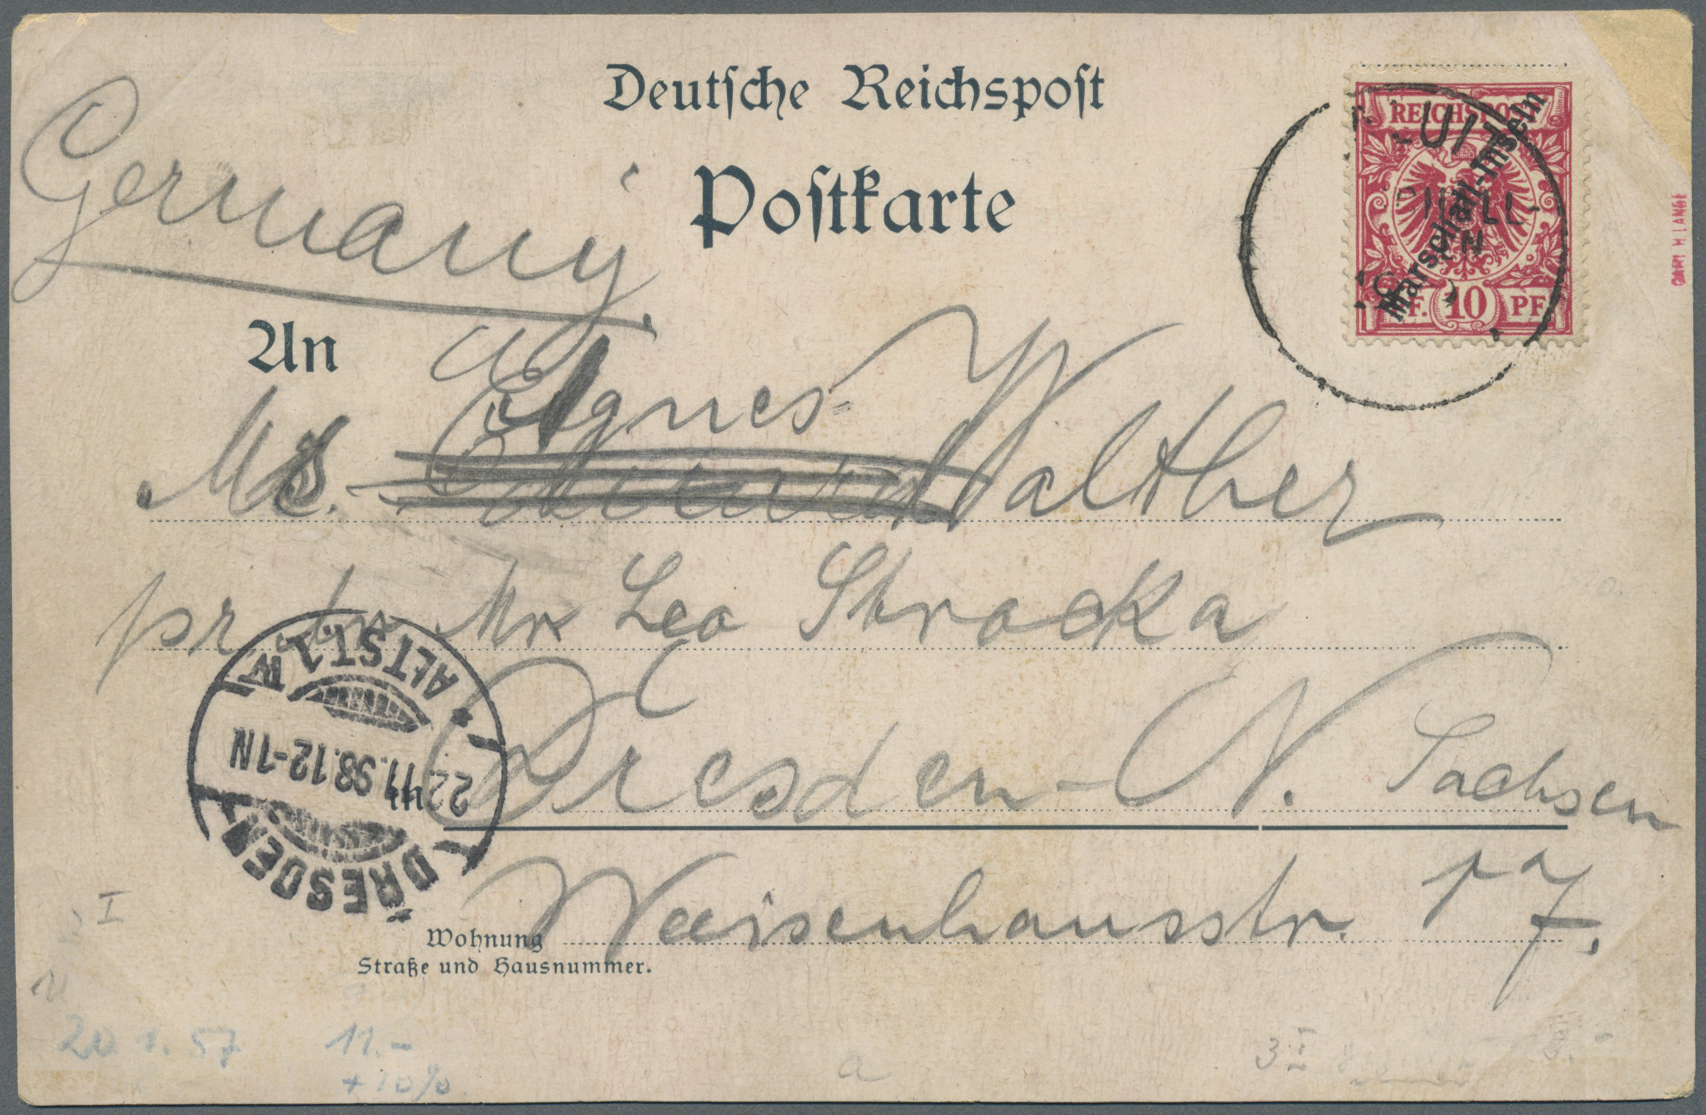 Lot 18762 - Deutsche Kolonien - Marshall-Inseln  -  Auktionshaus Christoph Gärtner GmbH & Co. KG Auction #40 Germany, Picture Post Cards, Collections Overseas, Thematics